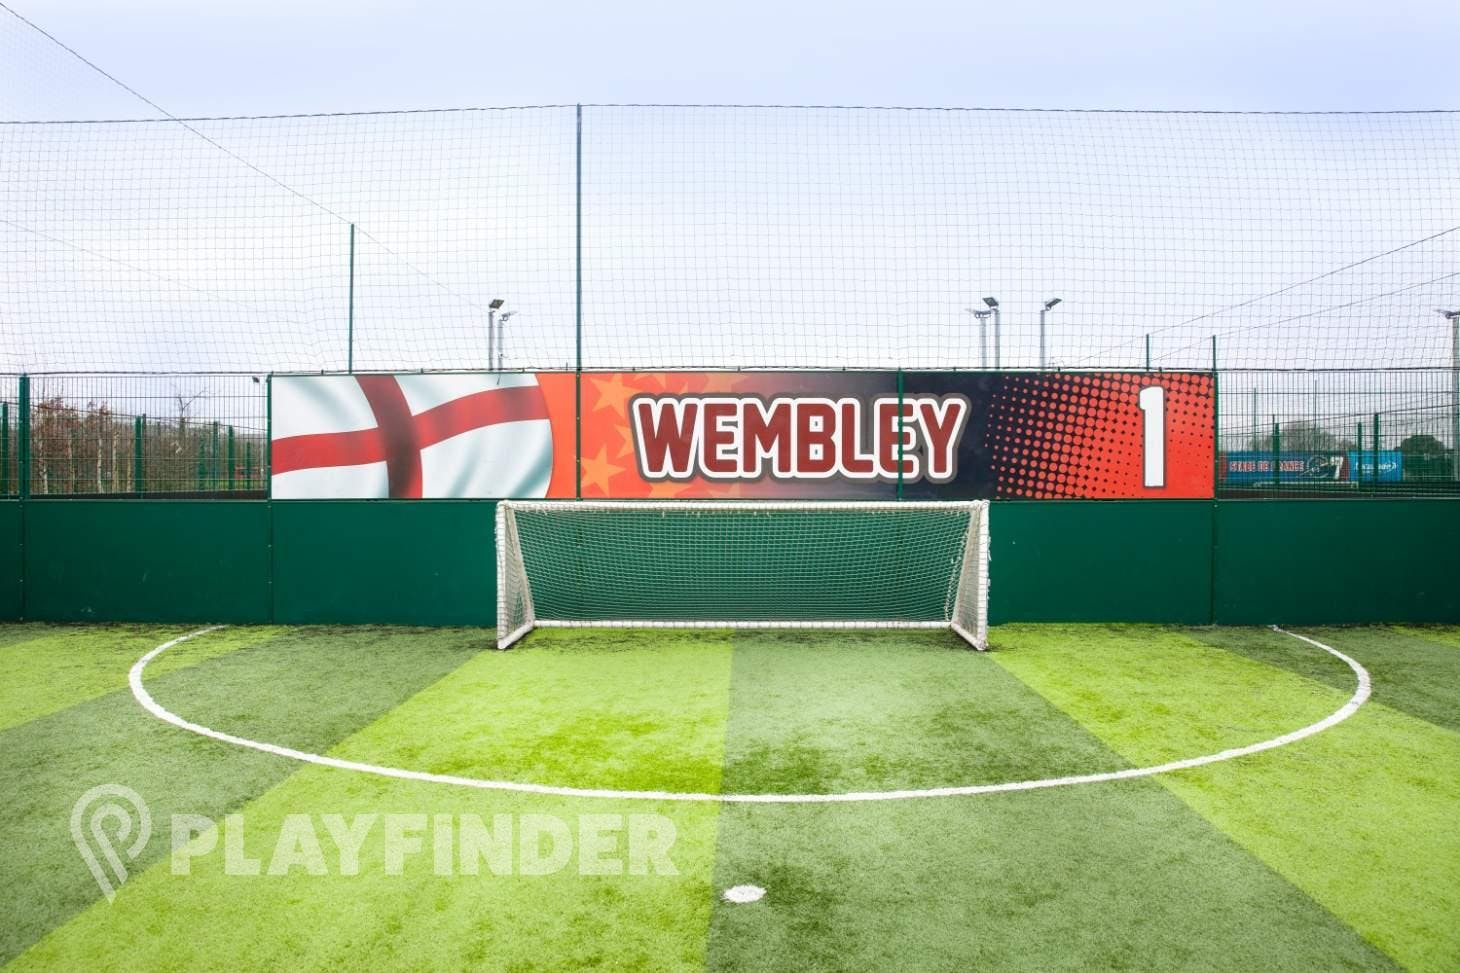 Goals Plymouth 5 a side | 3G Astroturf football pitch